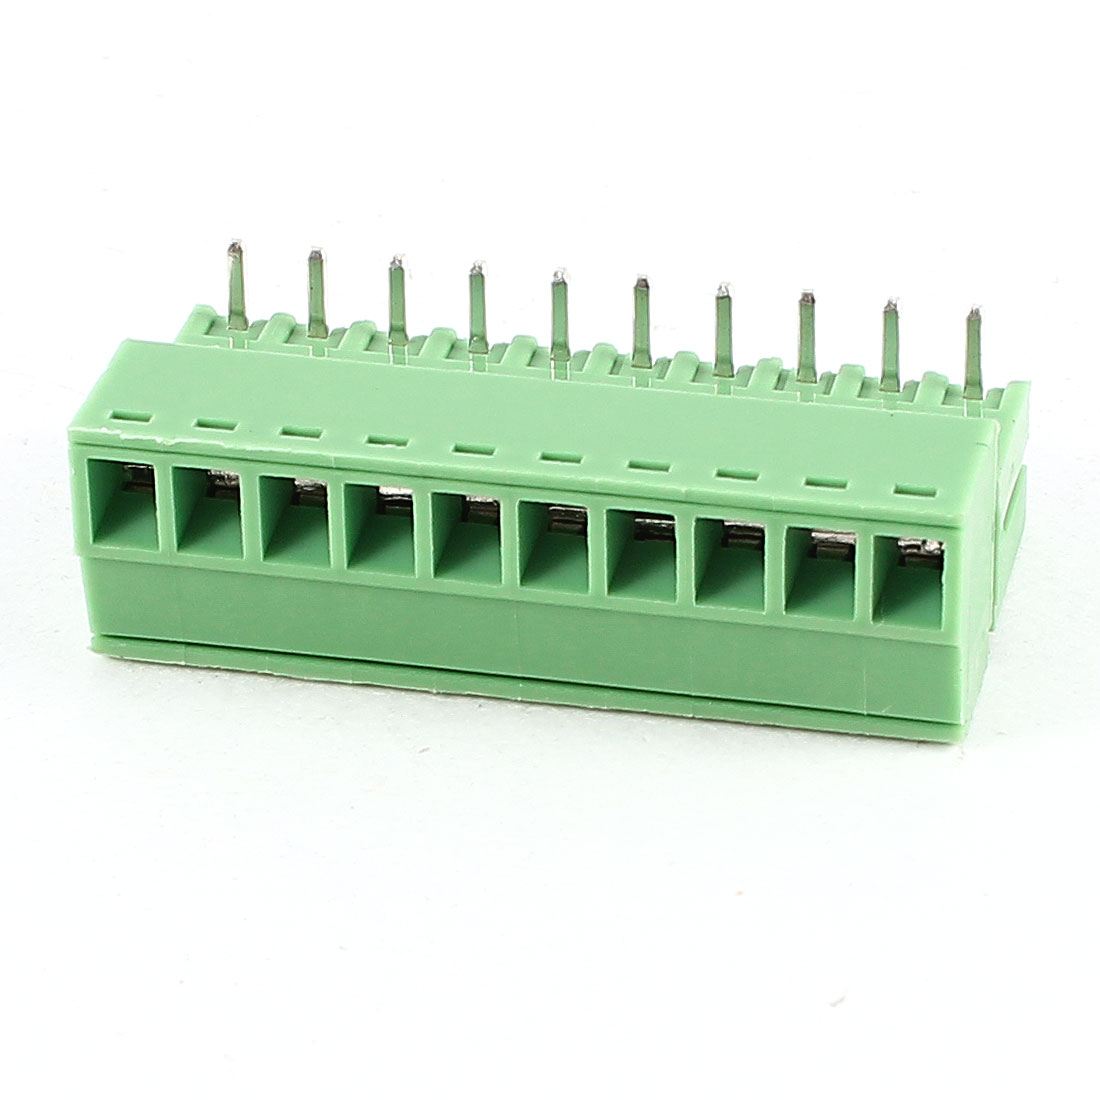 Green 10Pin 3.5mm Spacing PCB Screw Terminal Block Connector 300V 8A AWG22-16